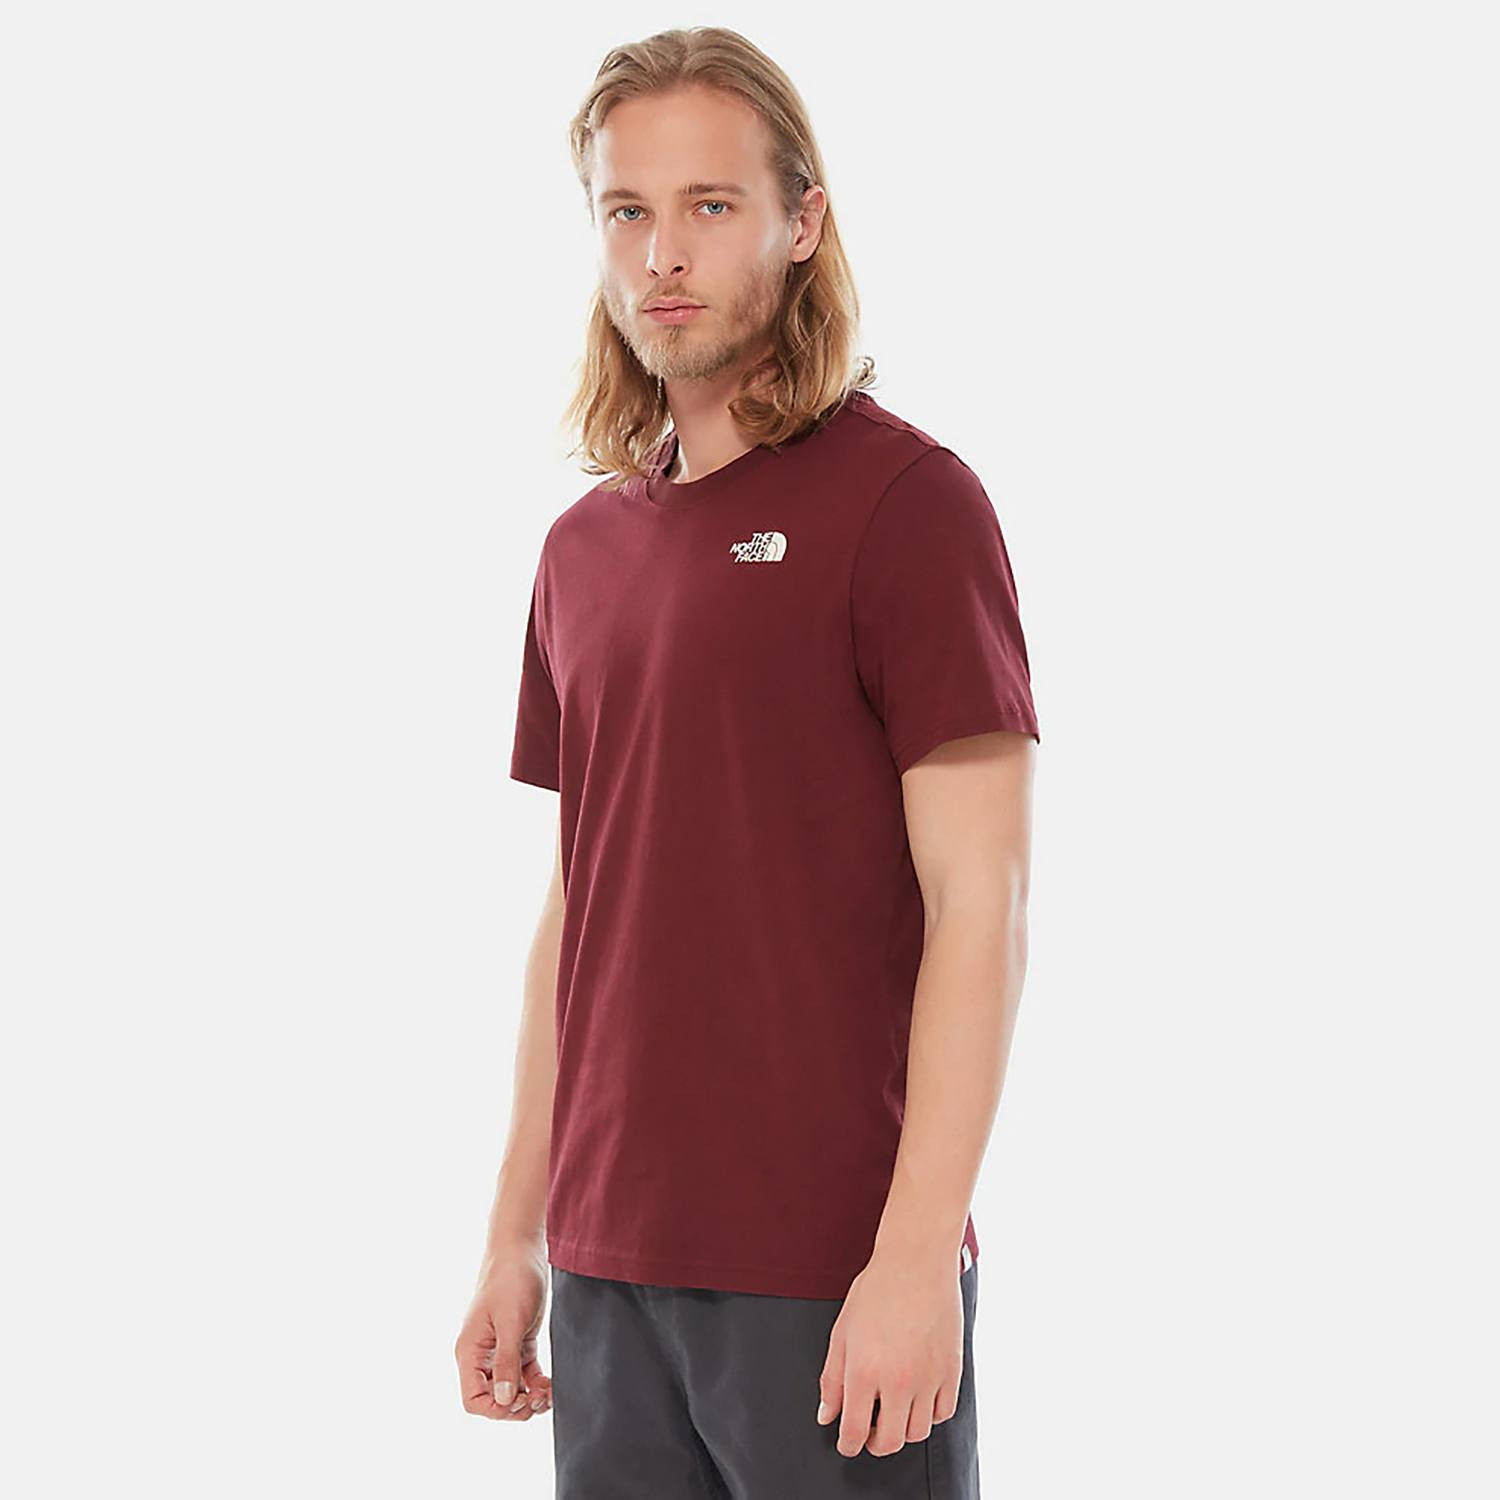 The North Face Men's Red Box Tee - Ανδρική Μπλούζα (9000036585_23241)